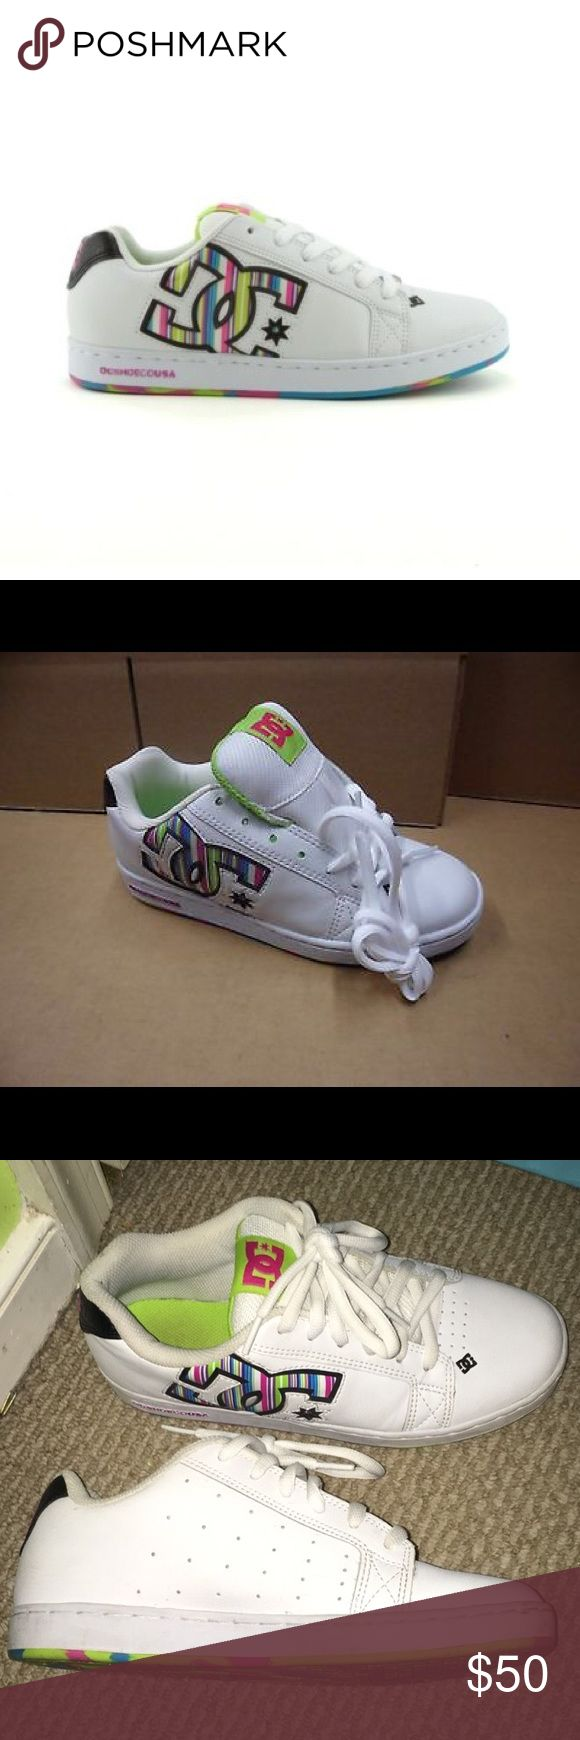 White/Multicolor Leather D.C. Women's Mack Size 9 Worn once, great shoes, very comfy! DC Shoes Sneakers